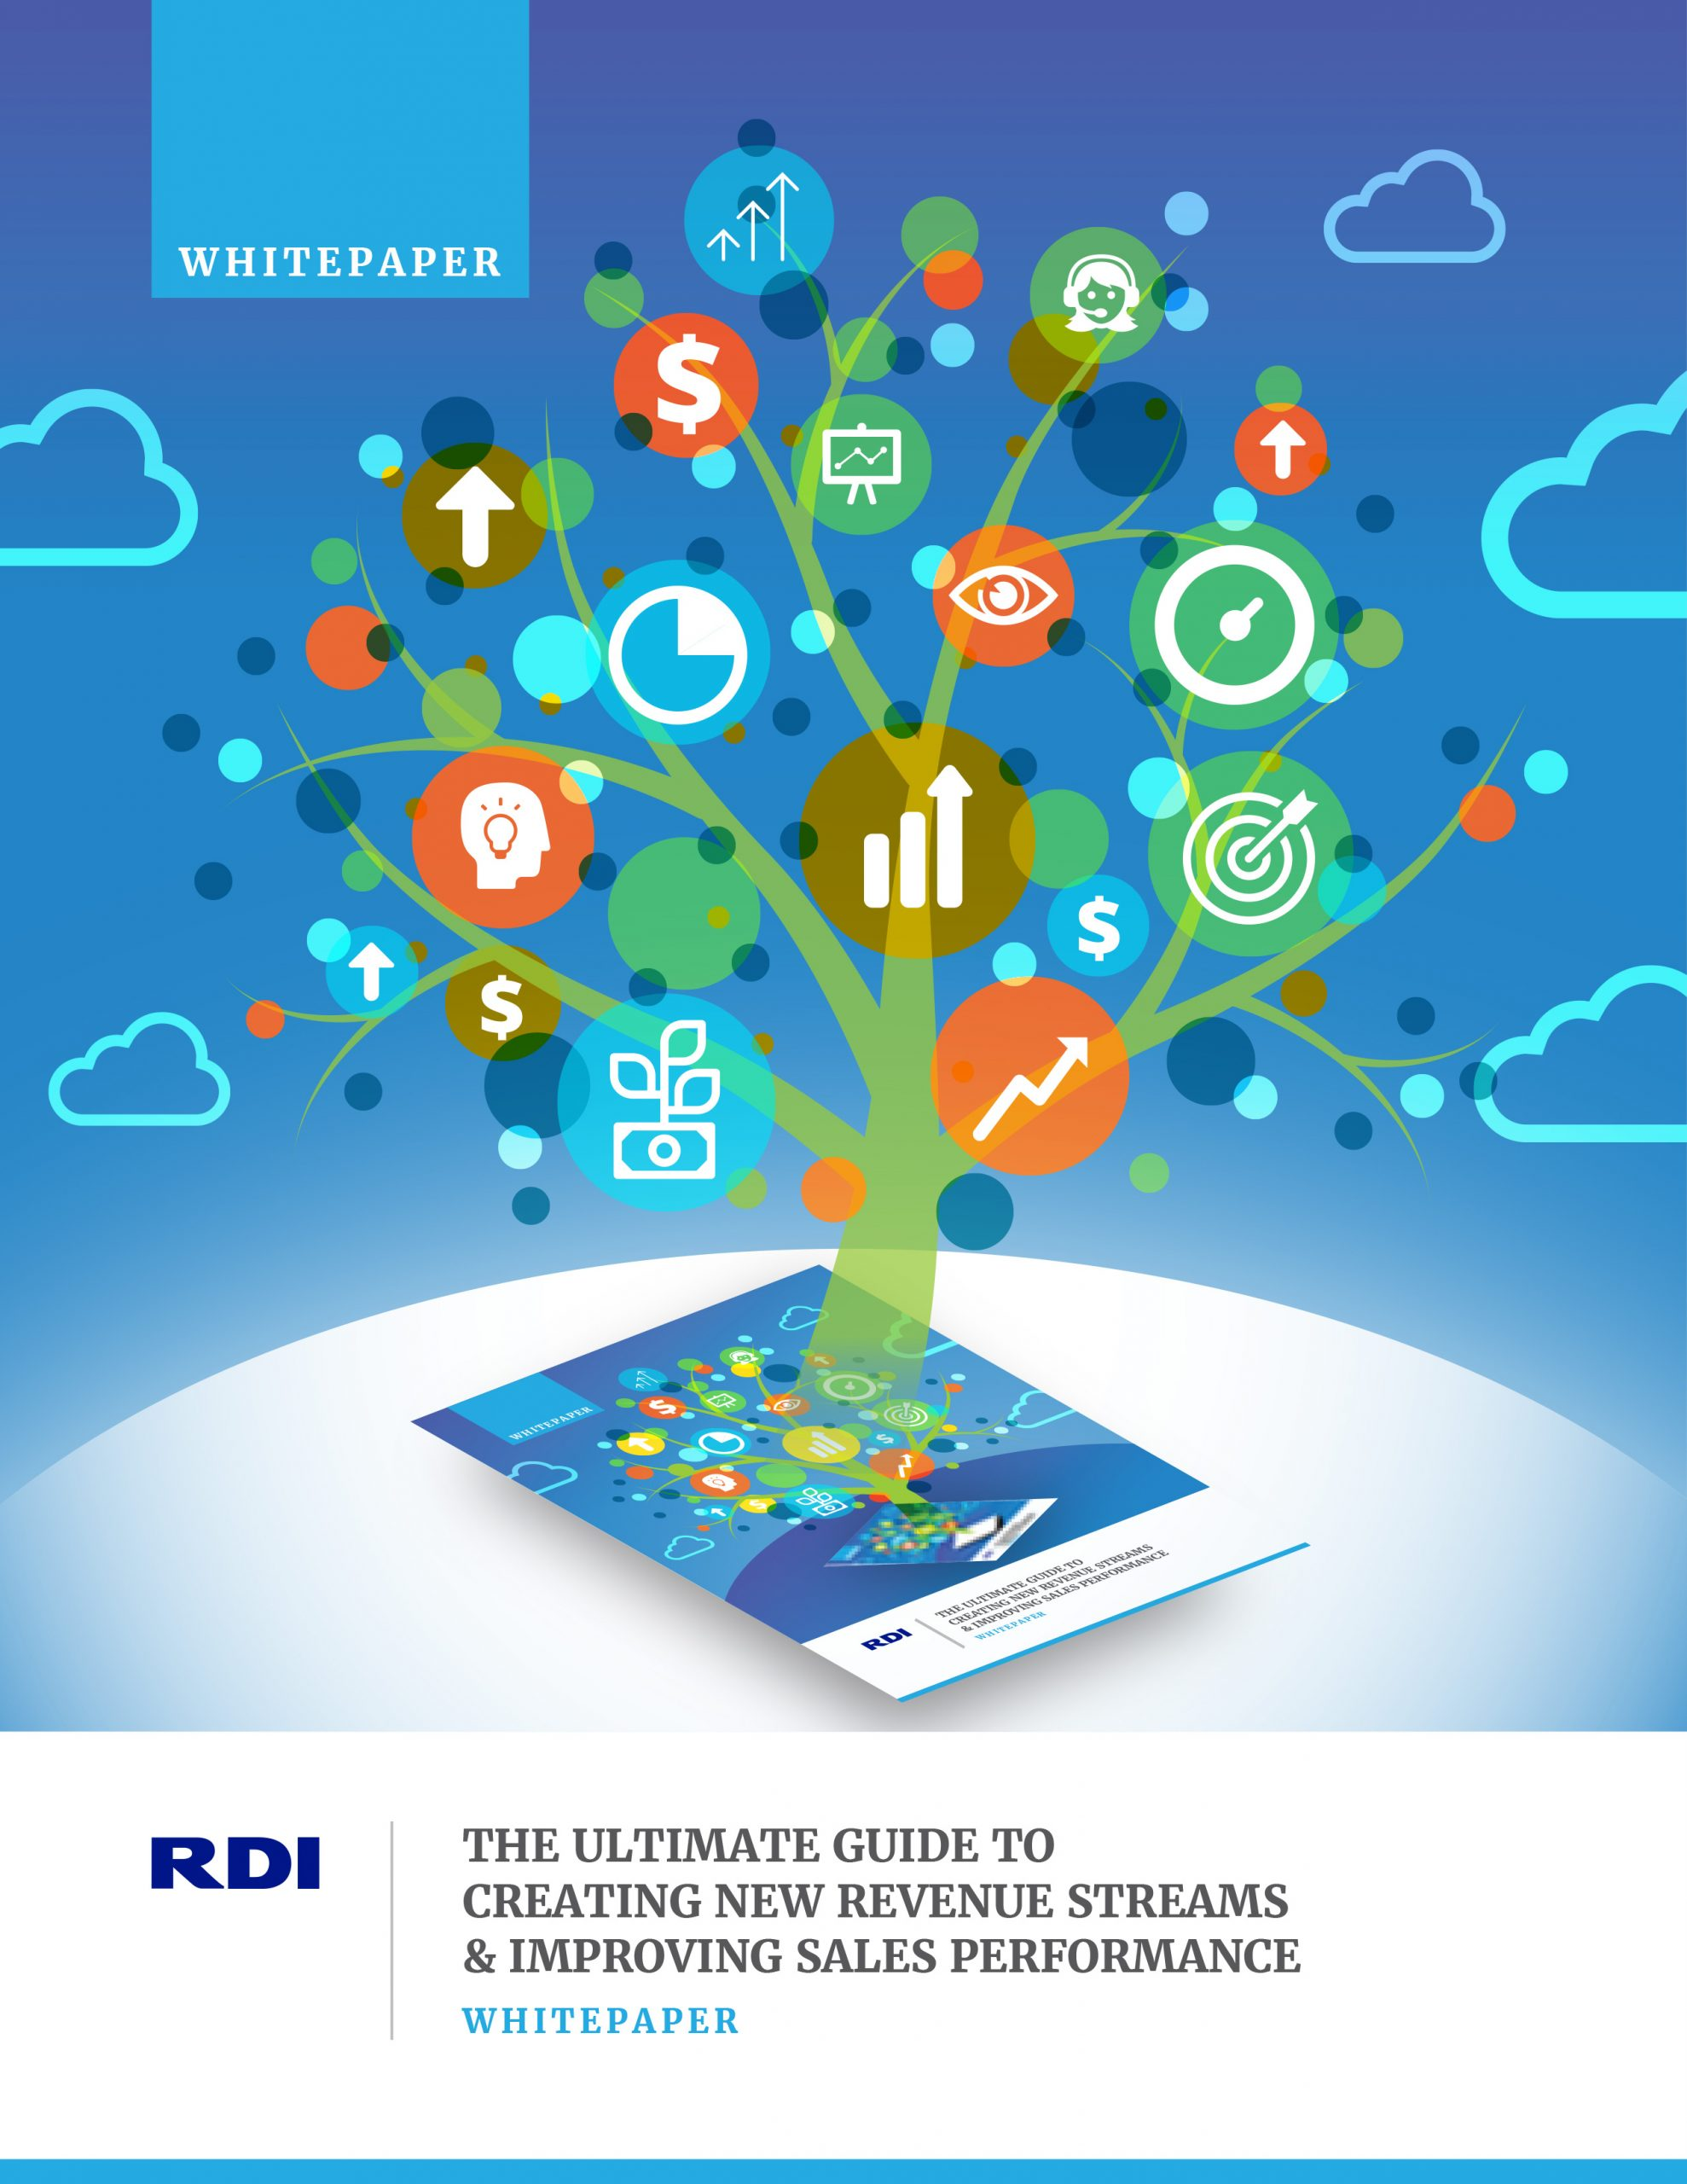 The Ultimate Guide to Creating New Revenue Streams & Improving Sales Performance